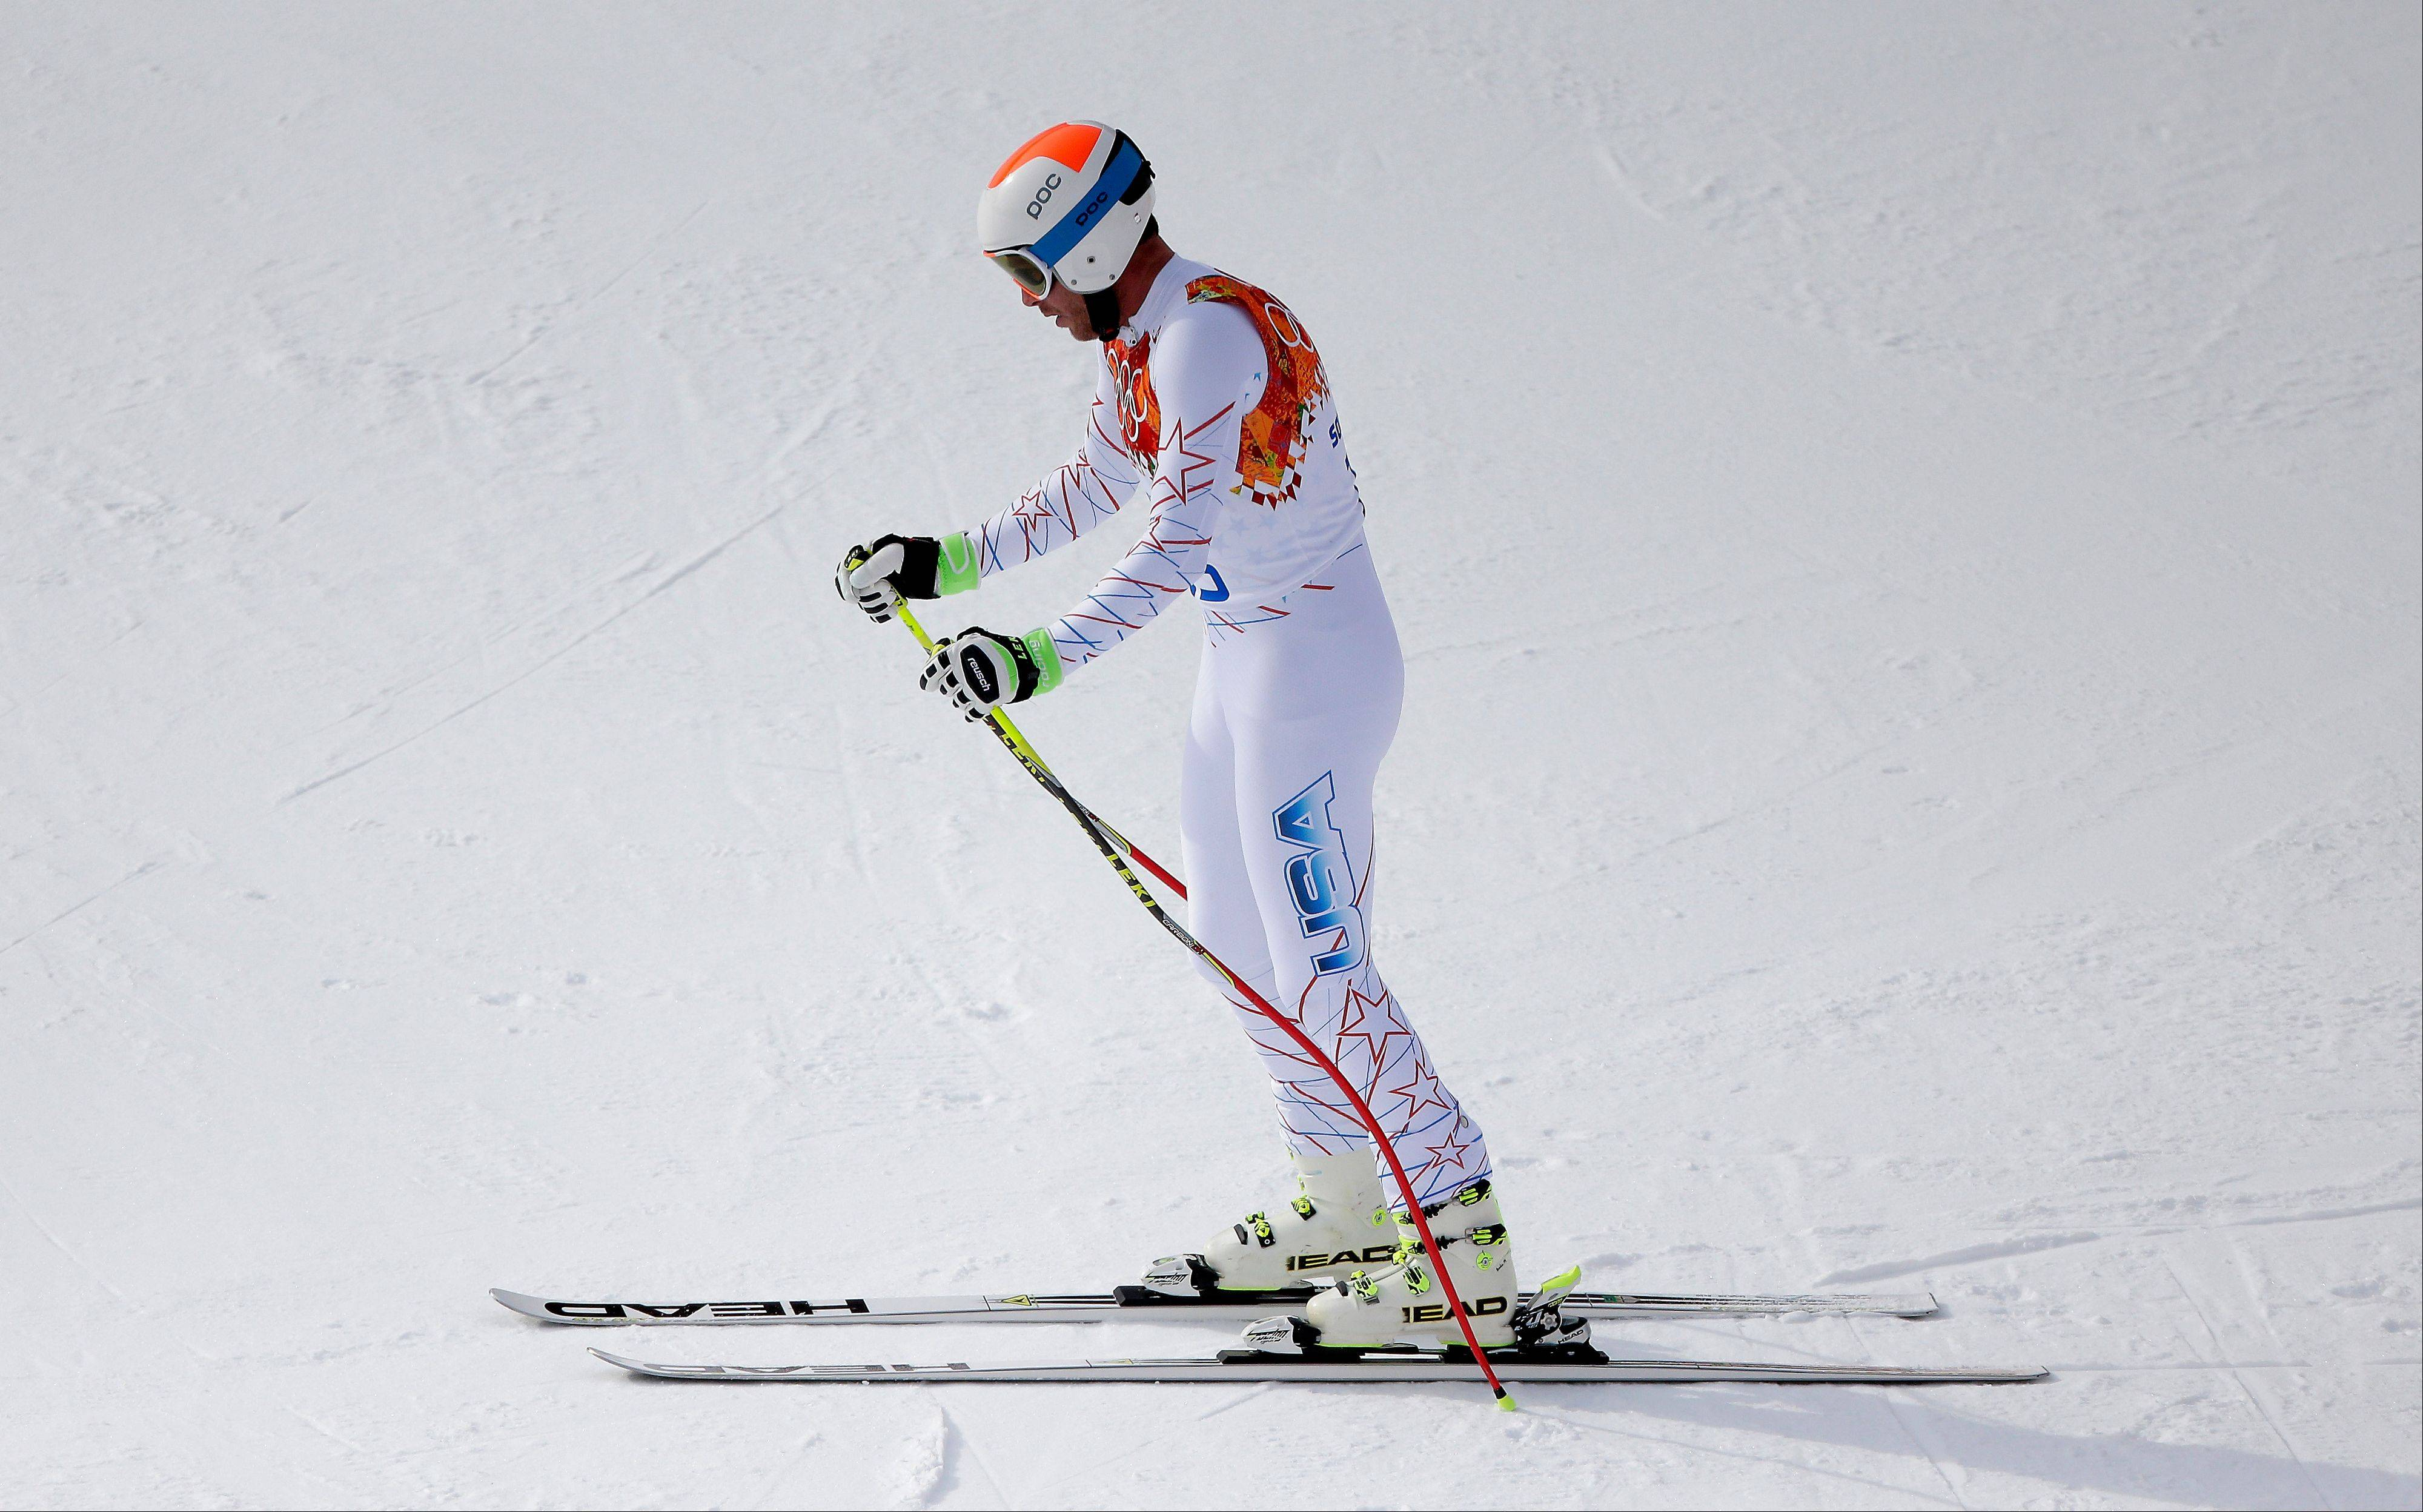 United States' Bode Miller pauses before leaves the course after his run in the men's downhill event at the 2014 Winter Olympics, Sunday, Feb. 9, 2014, in Krasnaya Polyana, Russia.